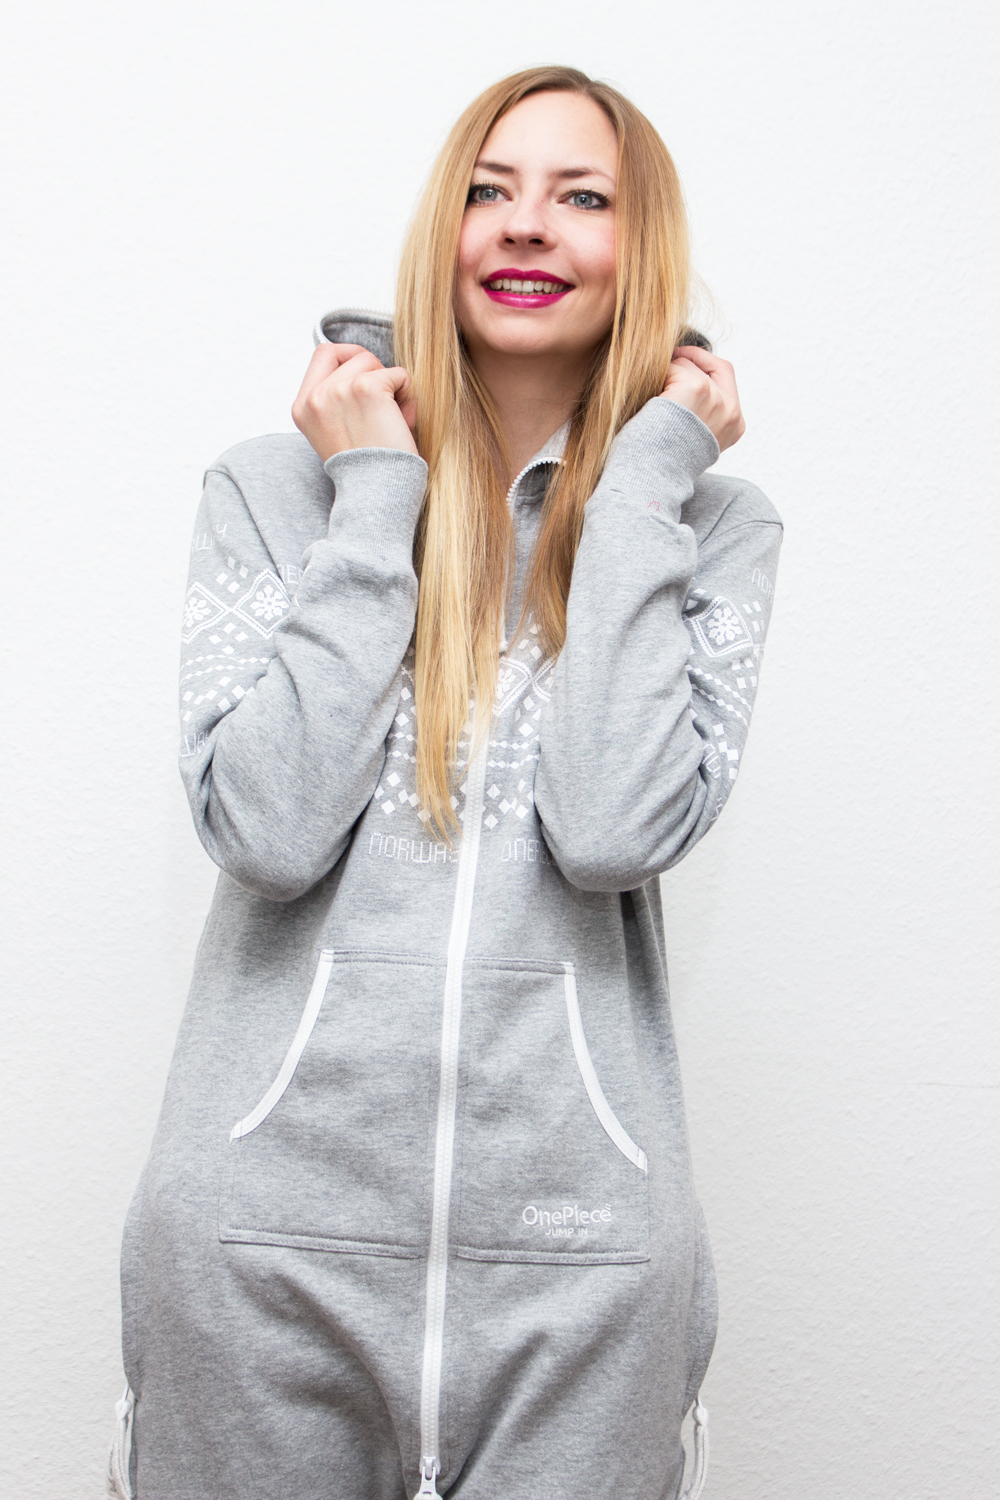 New in: Cozy Jumpsuit by OnePiece